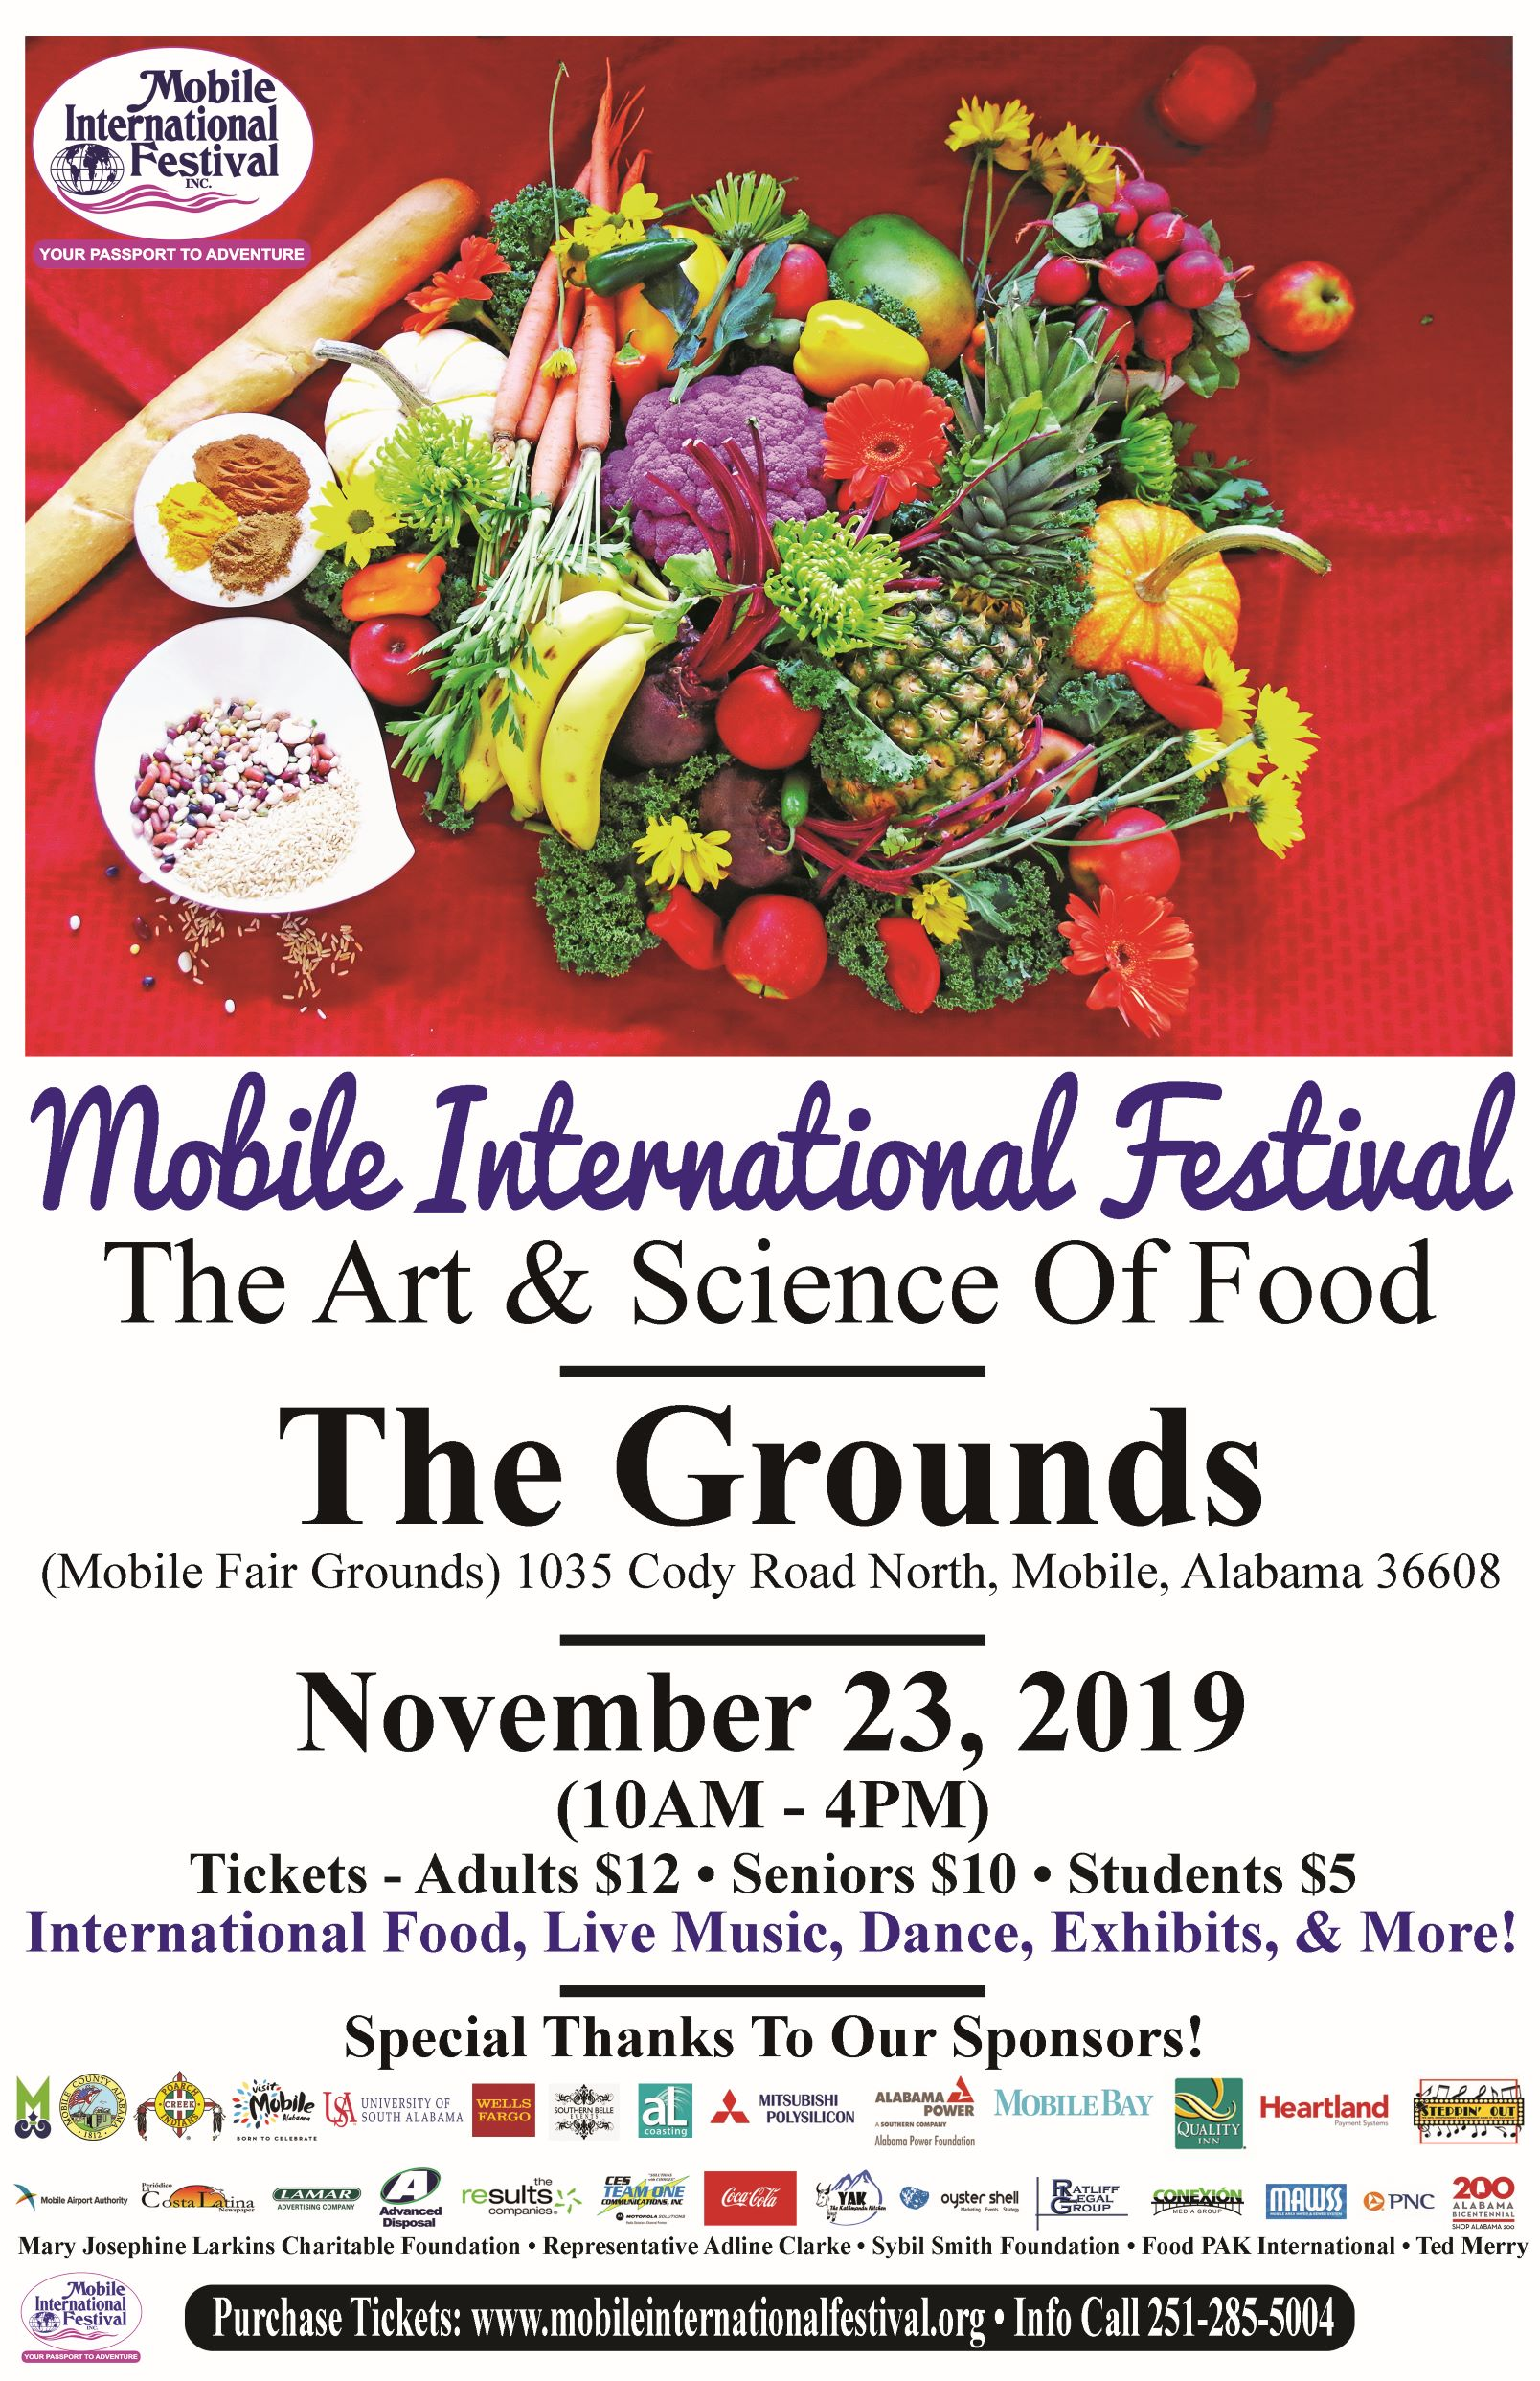 2019 Mobile International Festival Poster